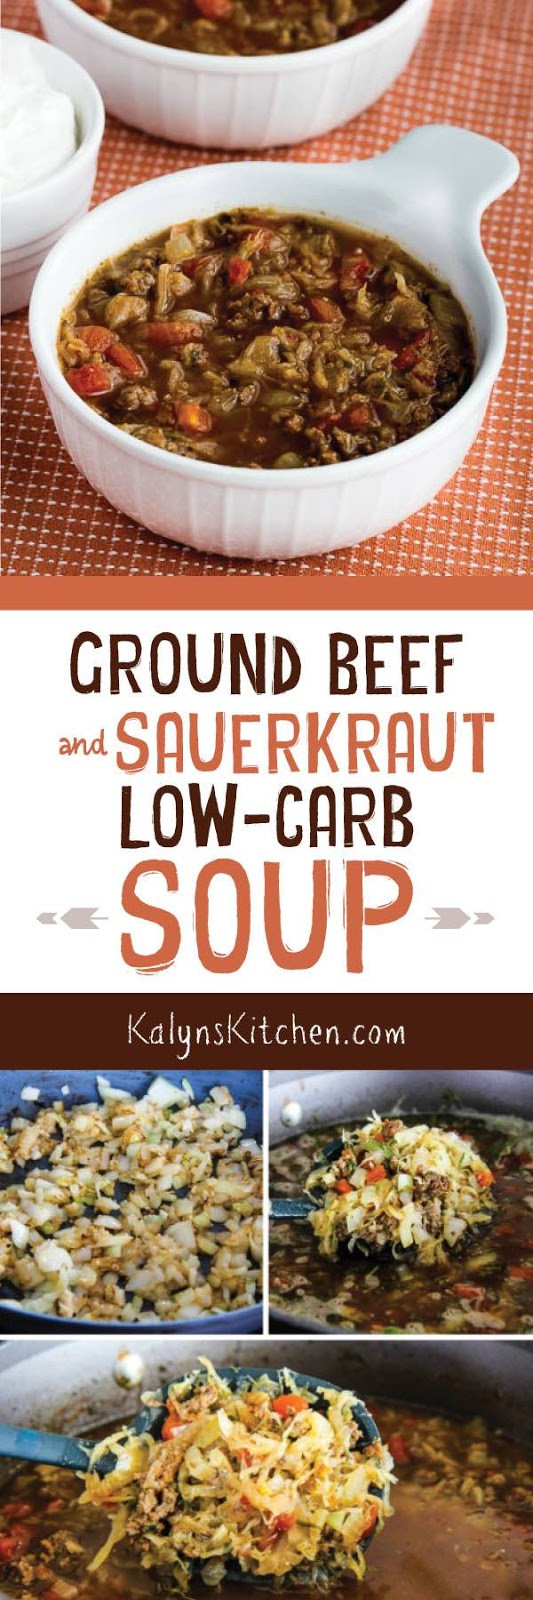 Low Carb Ground Beef Soup  Ground Beef and Sauerkraut Low Carb Soup Kalyn s Kitchen